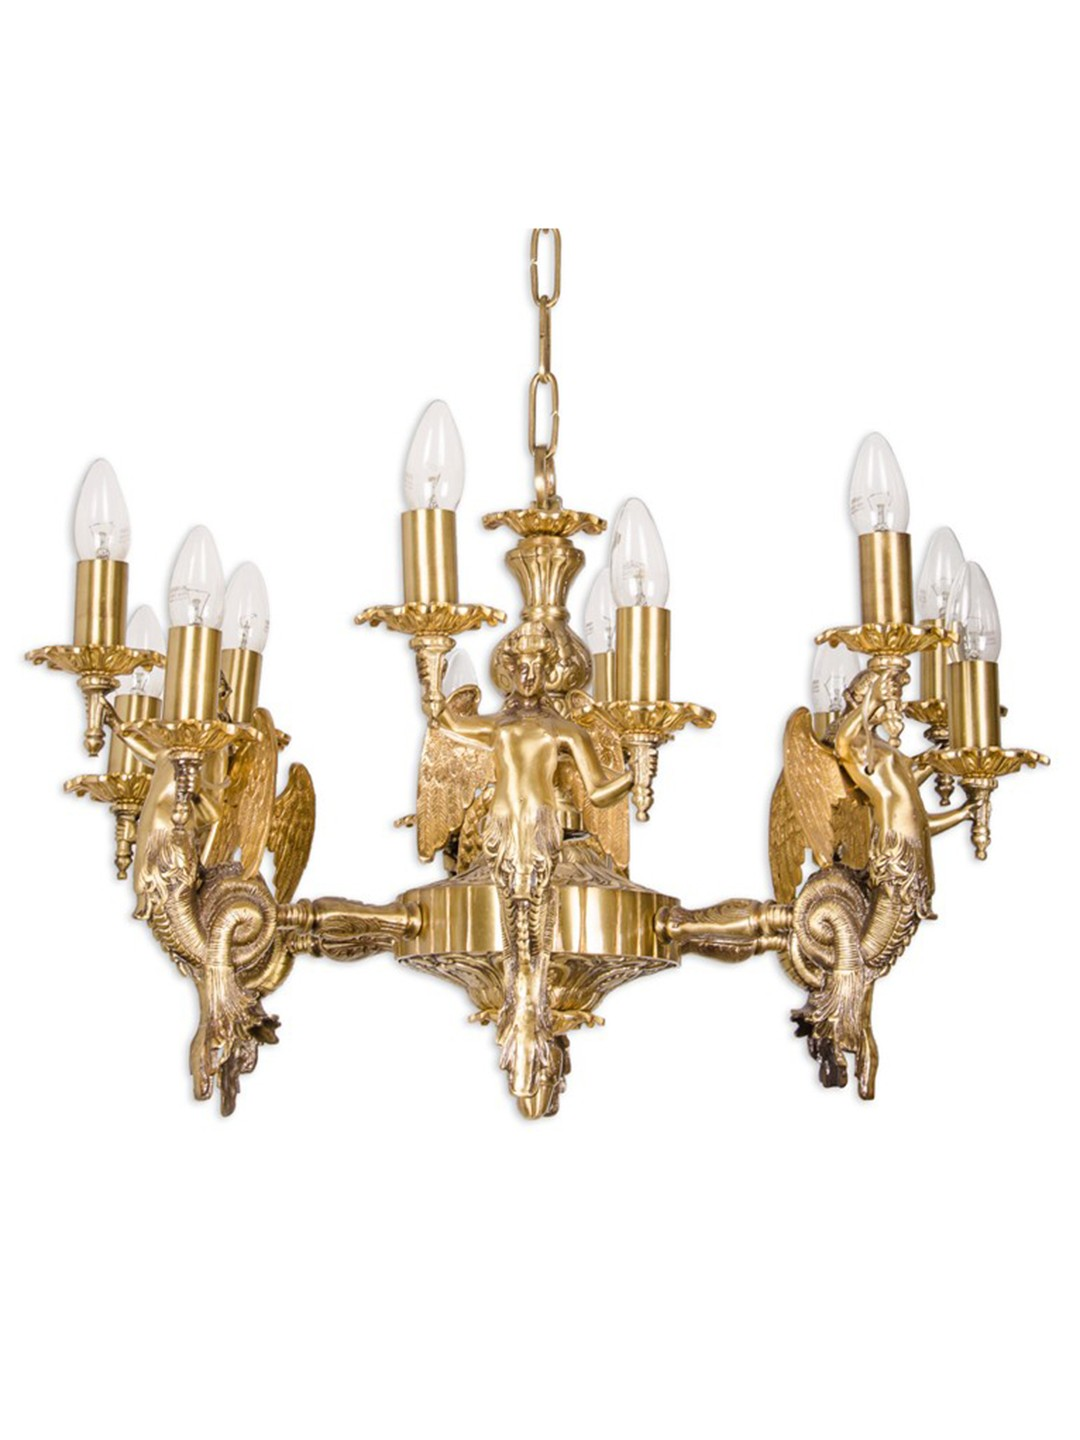 Mermaid 12 light cast brass chandelier